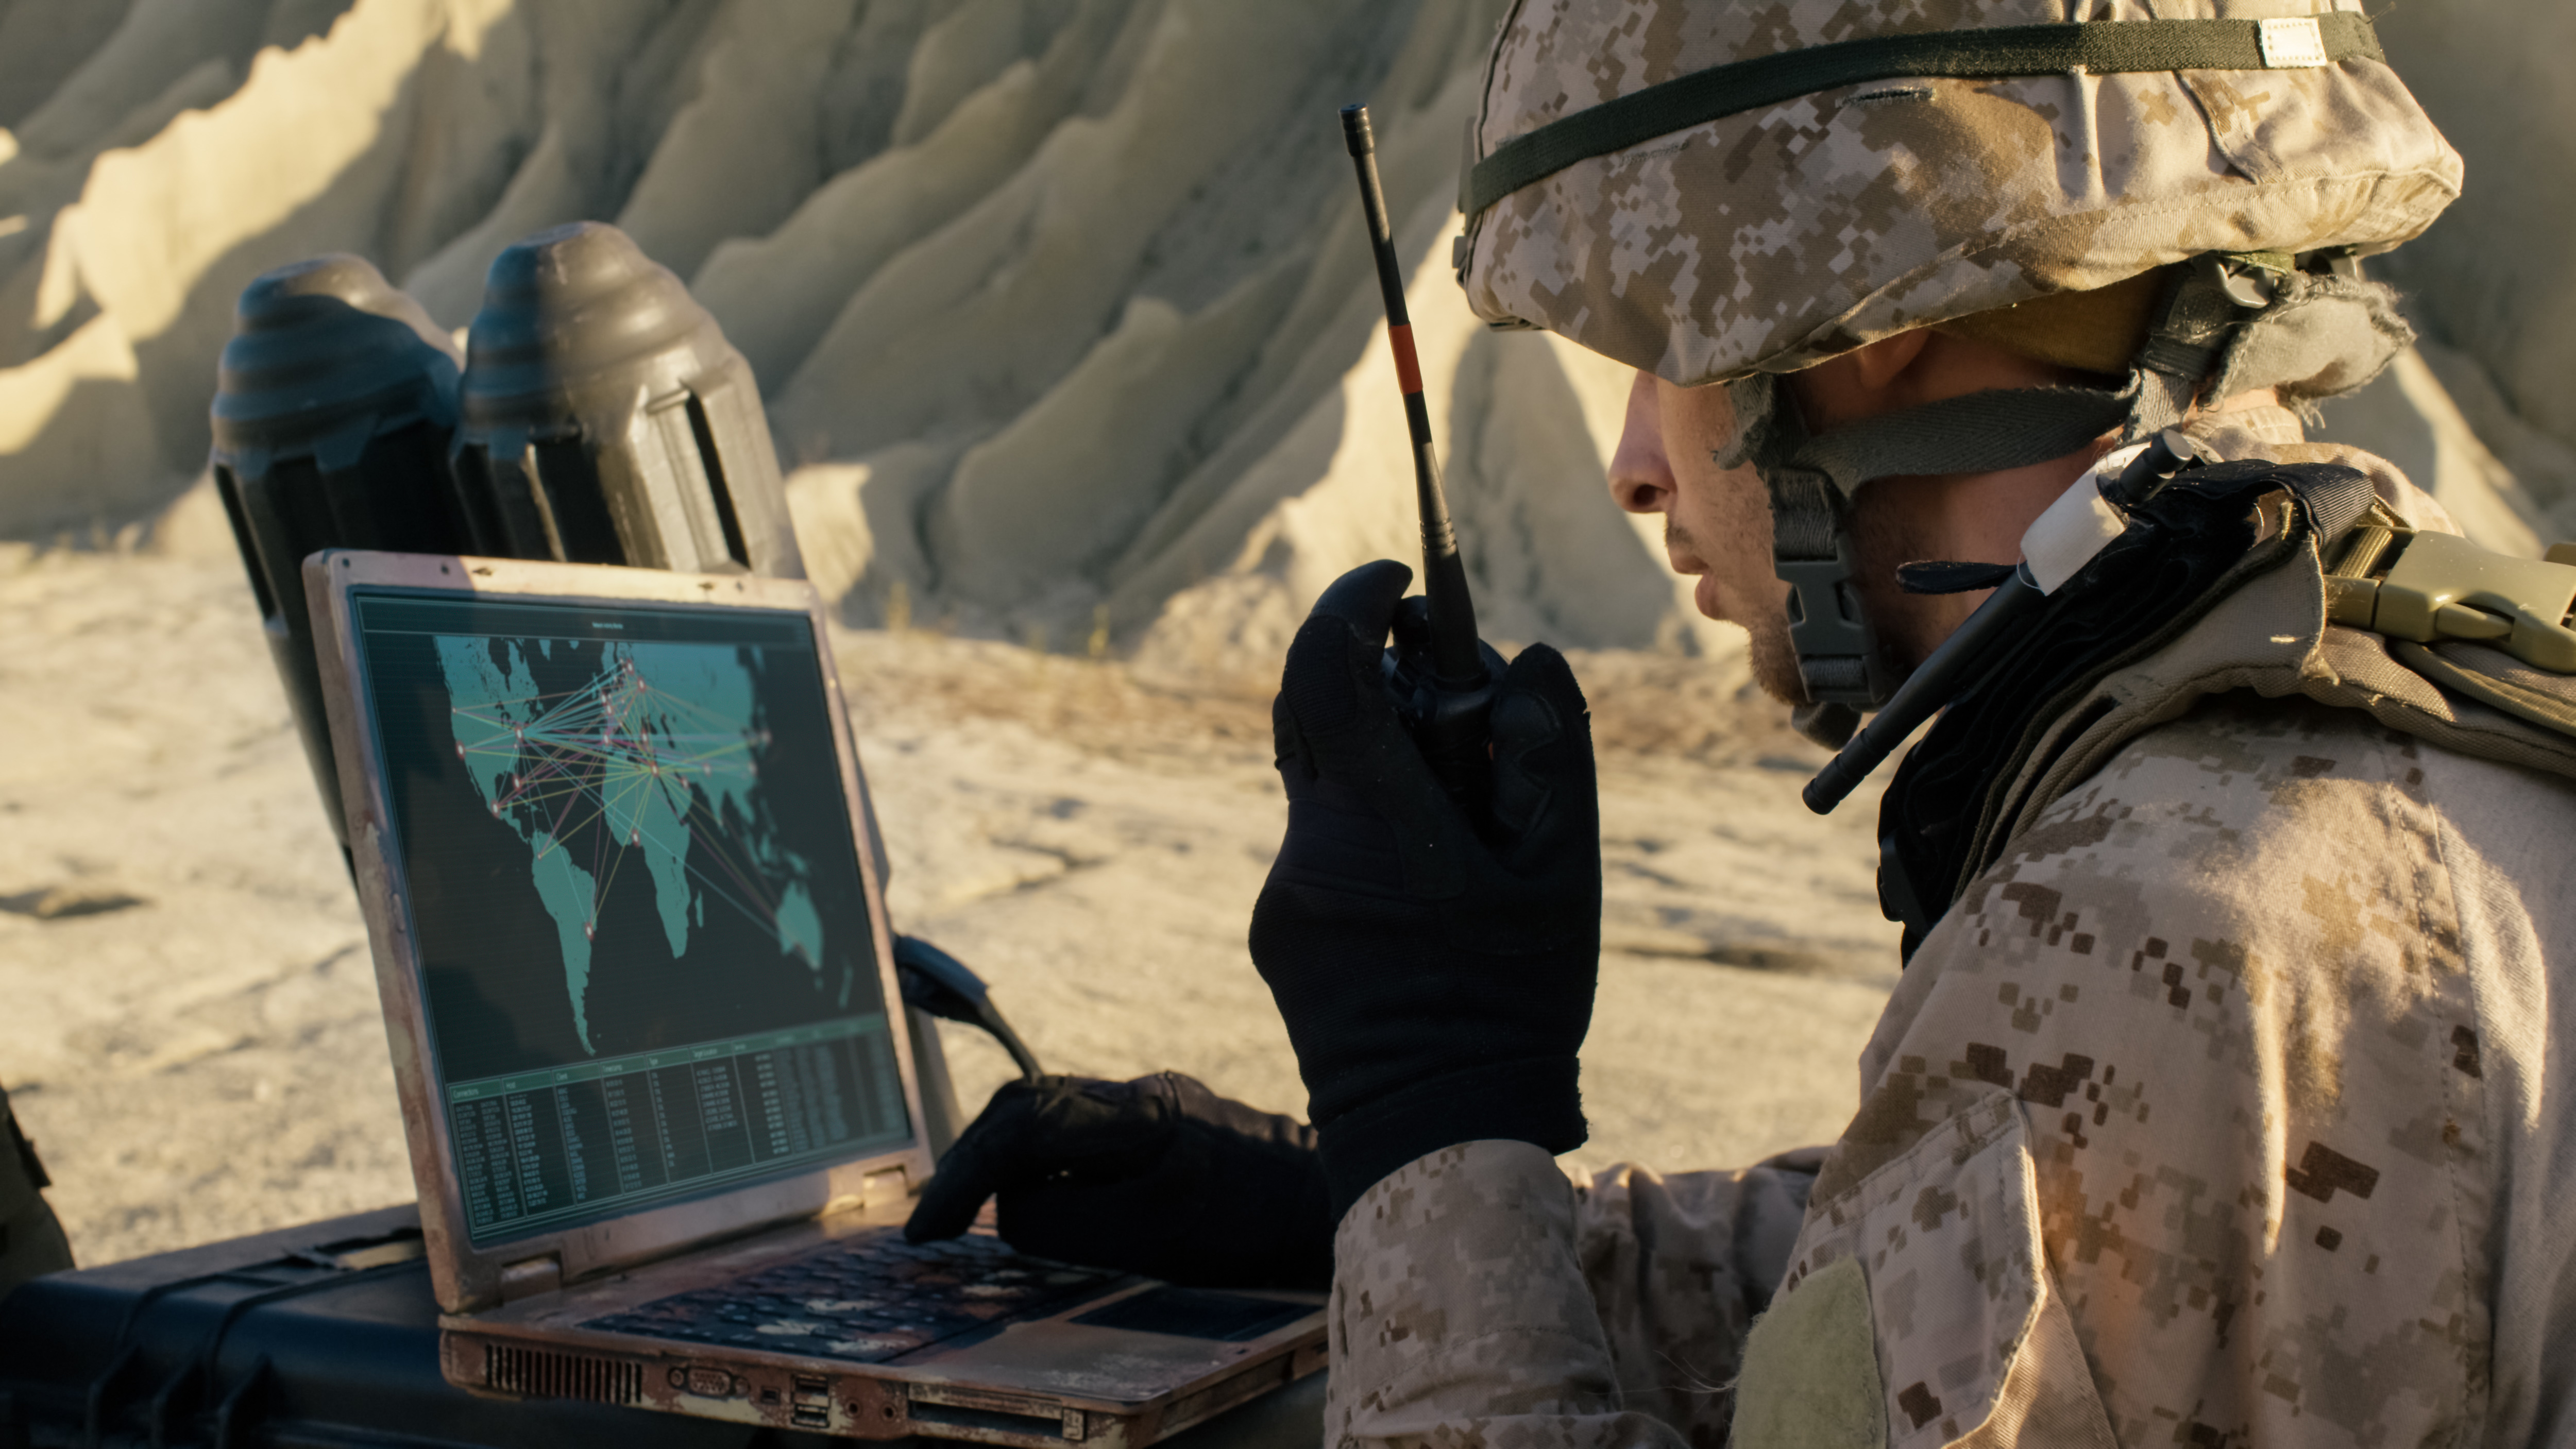 ITES3S is expected to serve as the primary source of information technology ITrelated services for the US Army across the globe